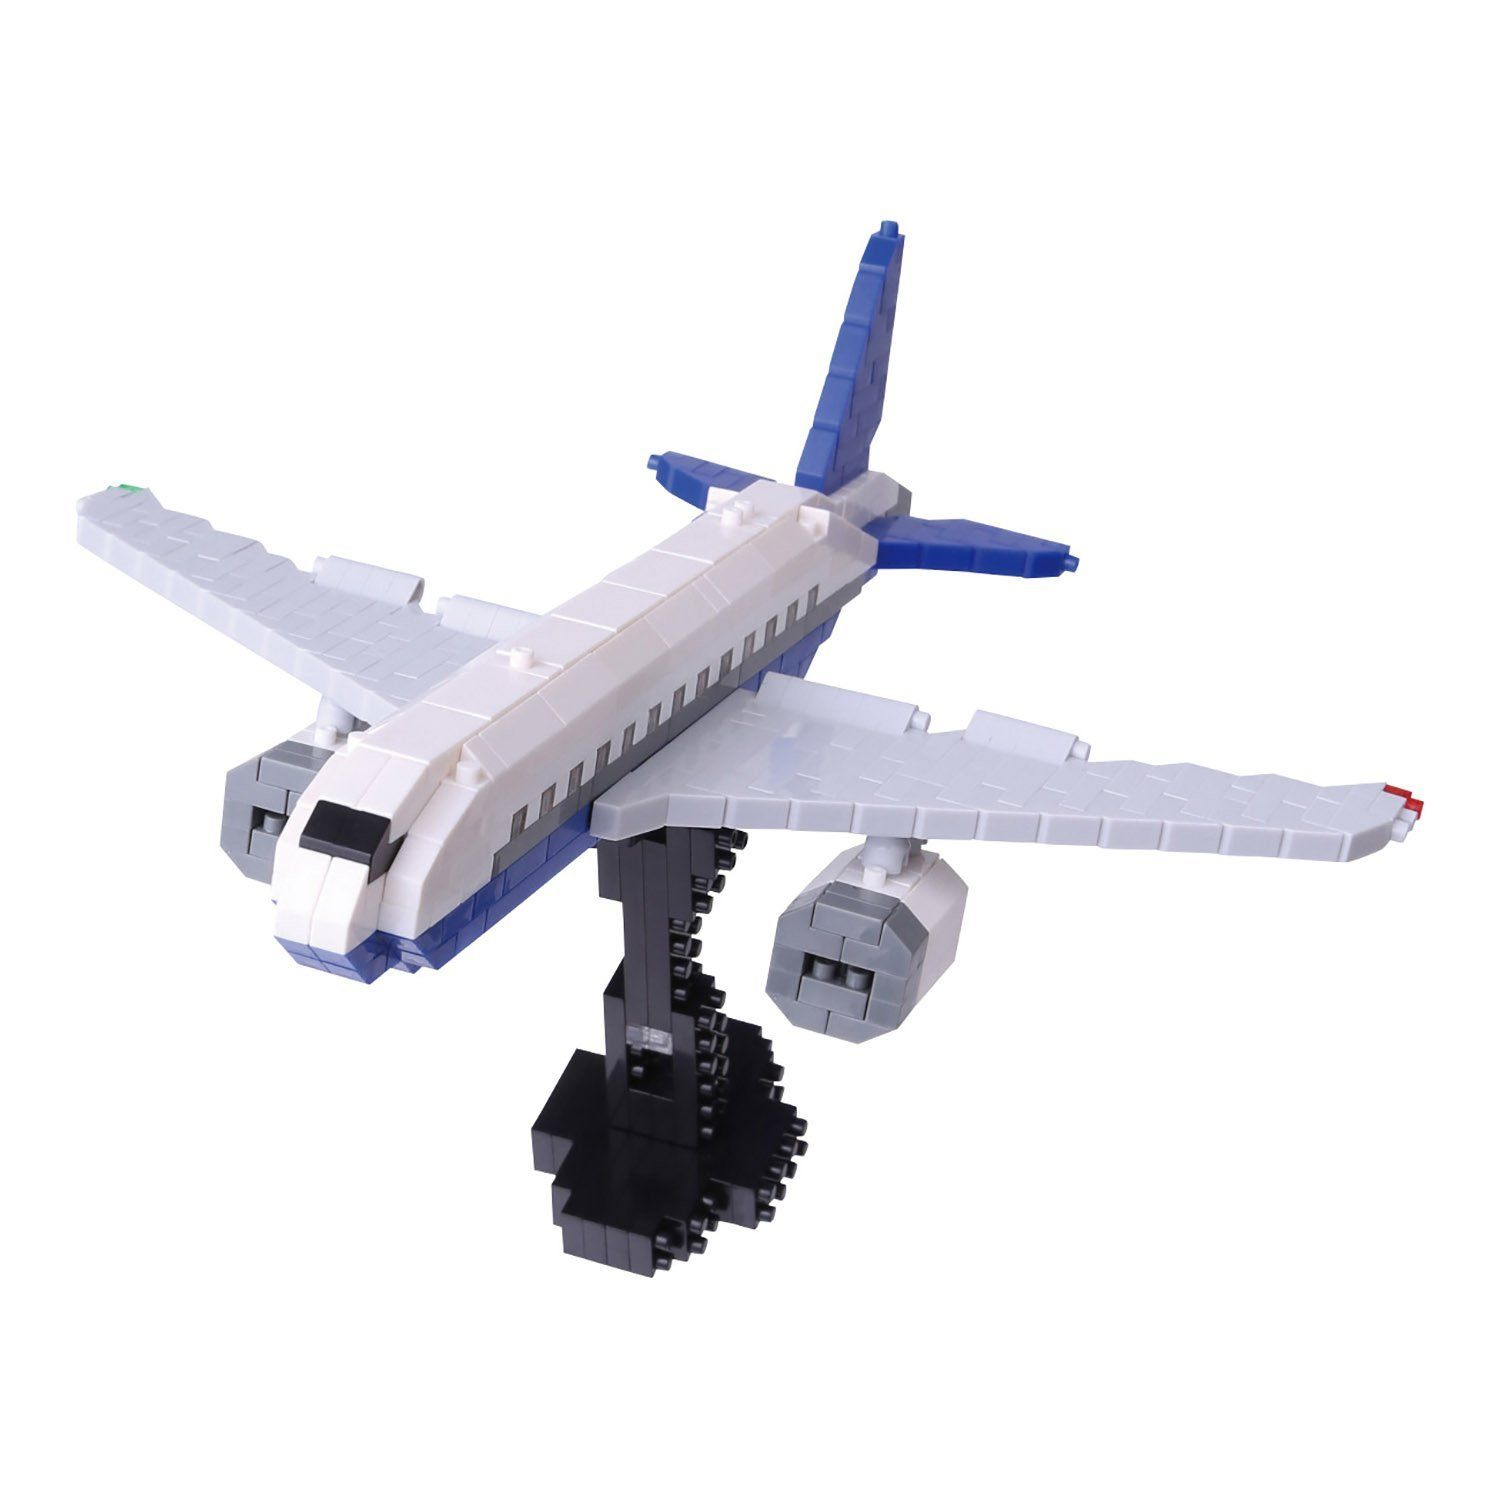 Airliner Large Building Set by Nanoblock (NBM013) by nanoblock